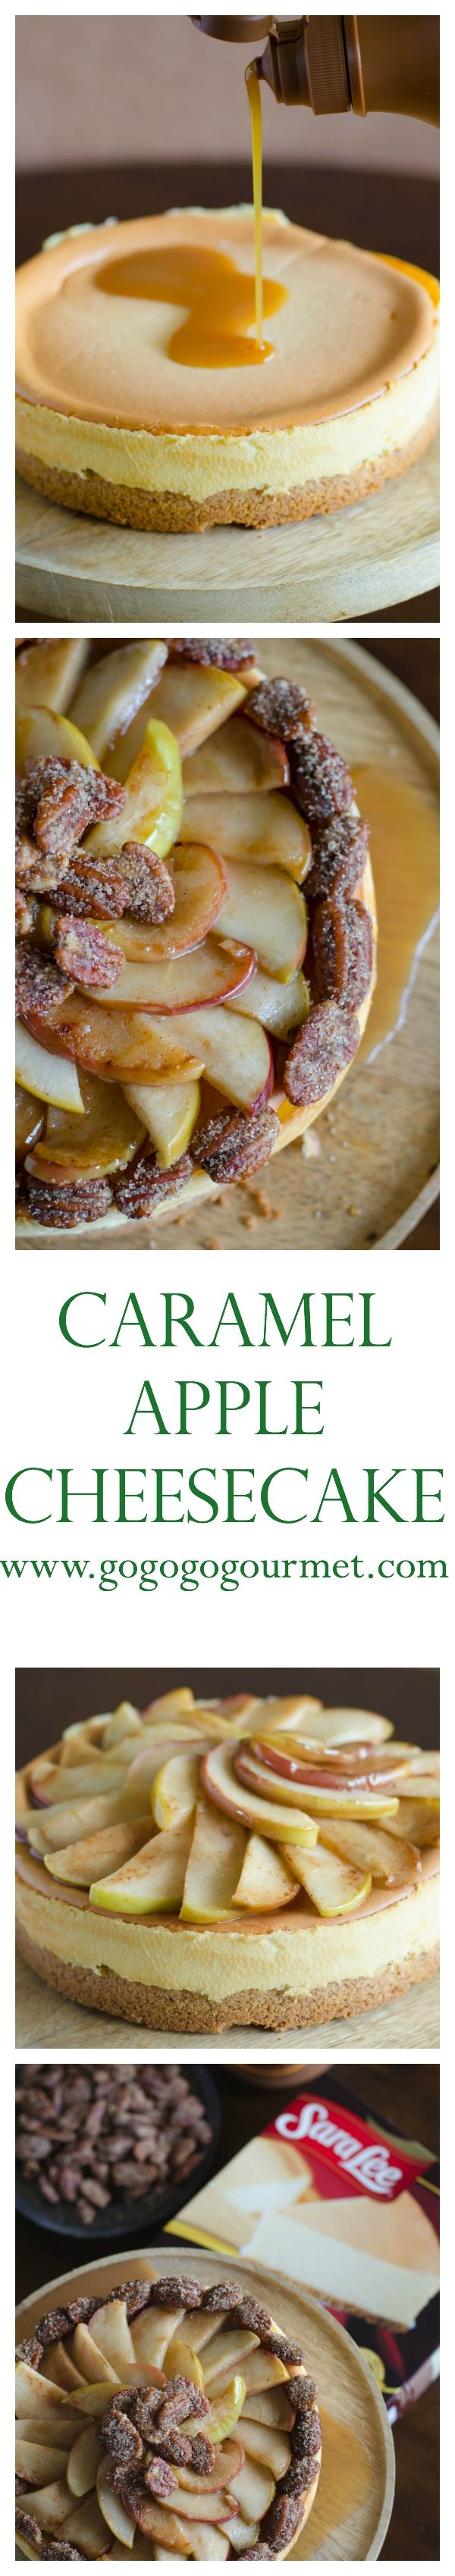 Turn a plain @saraleedesserts cheesecake into a fall show-stopping dessert with Hershey's Syrup! Caramel Apple Cheesecake | Go Go Go Gourmet @gogogogourmet #Pmedia #ad #SweetTreatDessert (Plain Cheesecake Recipes)